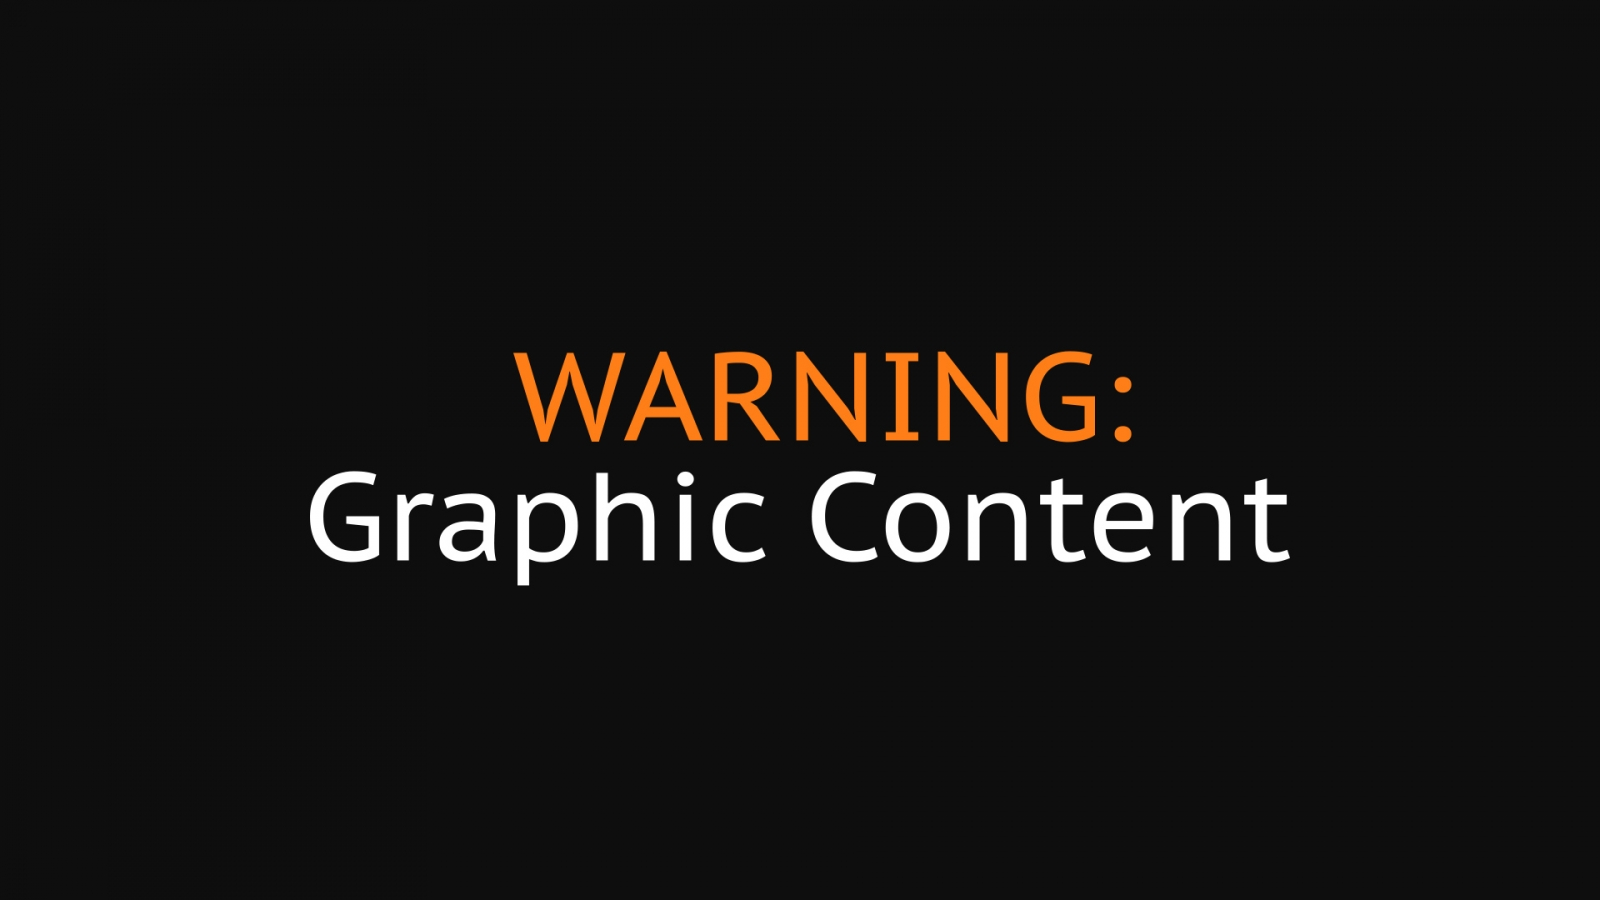 Graphic content warning